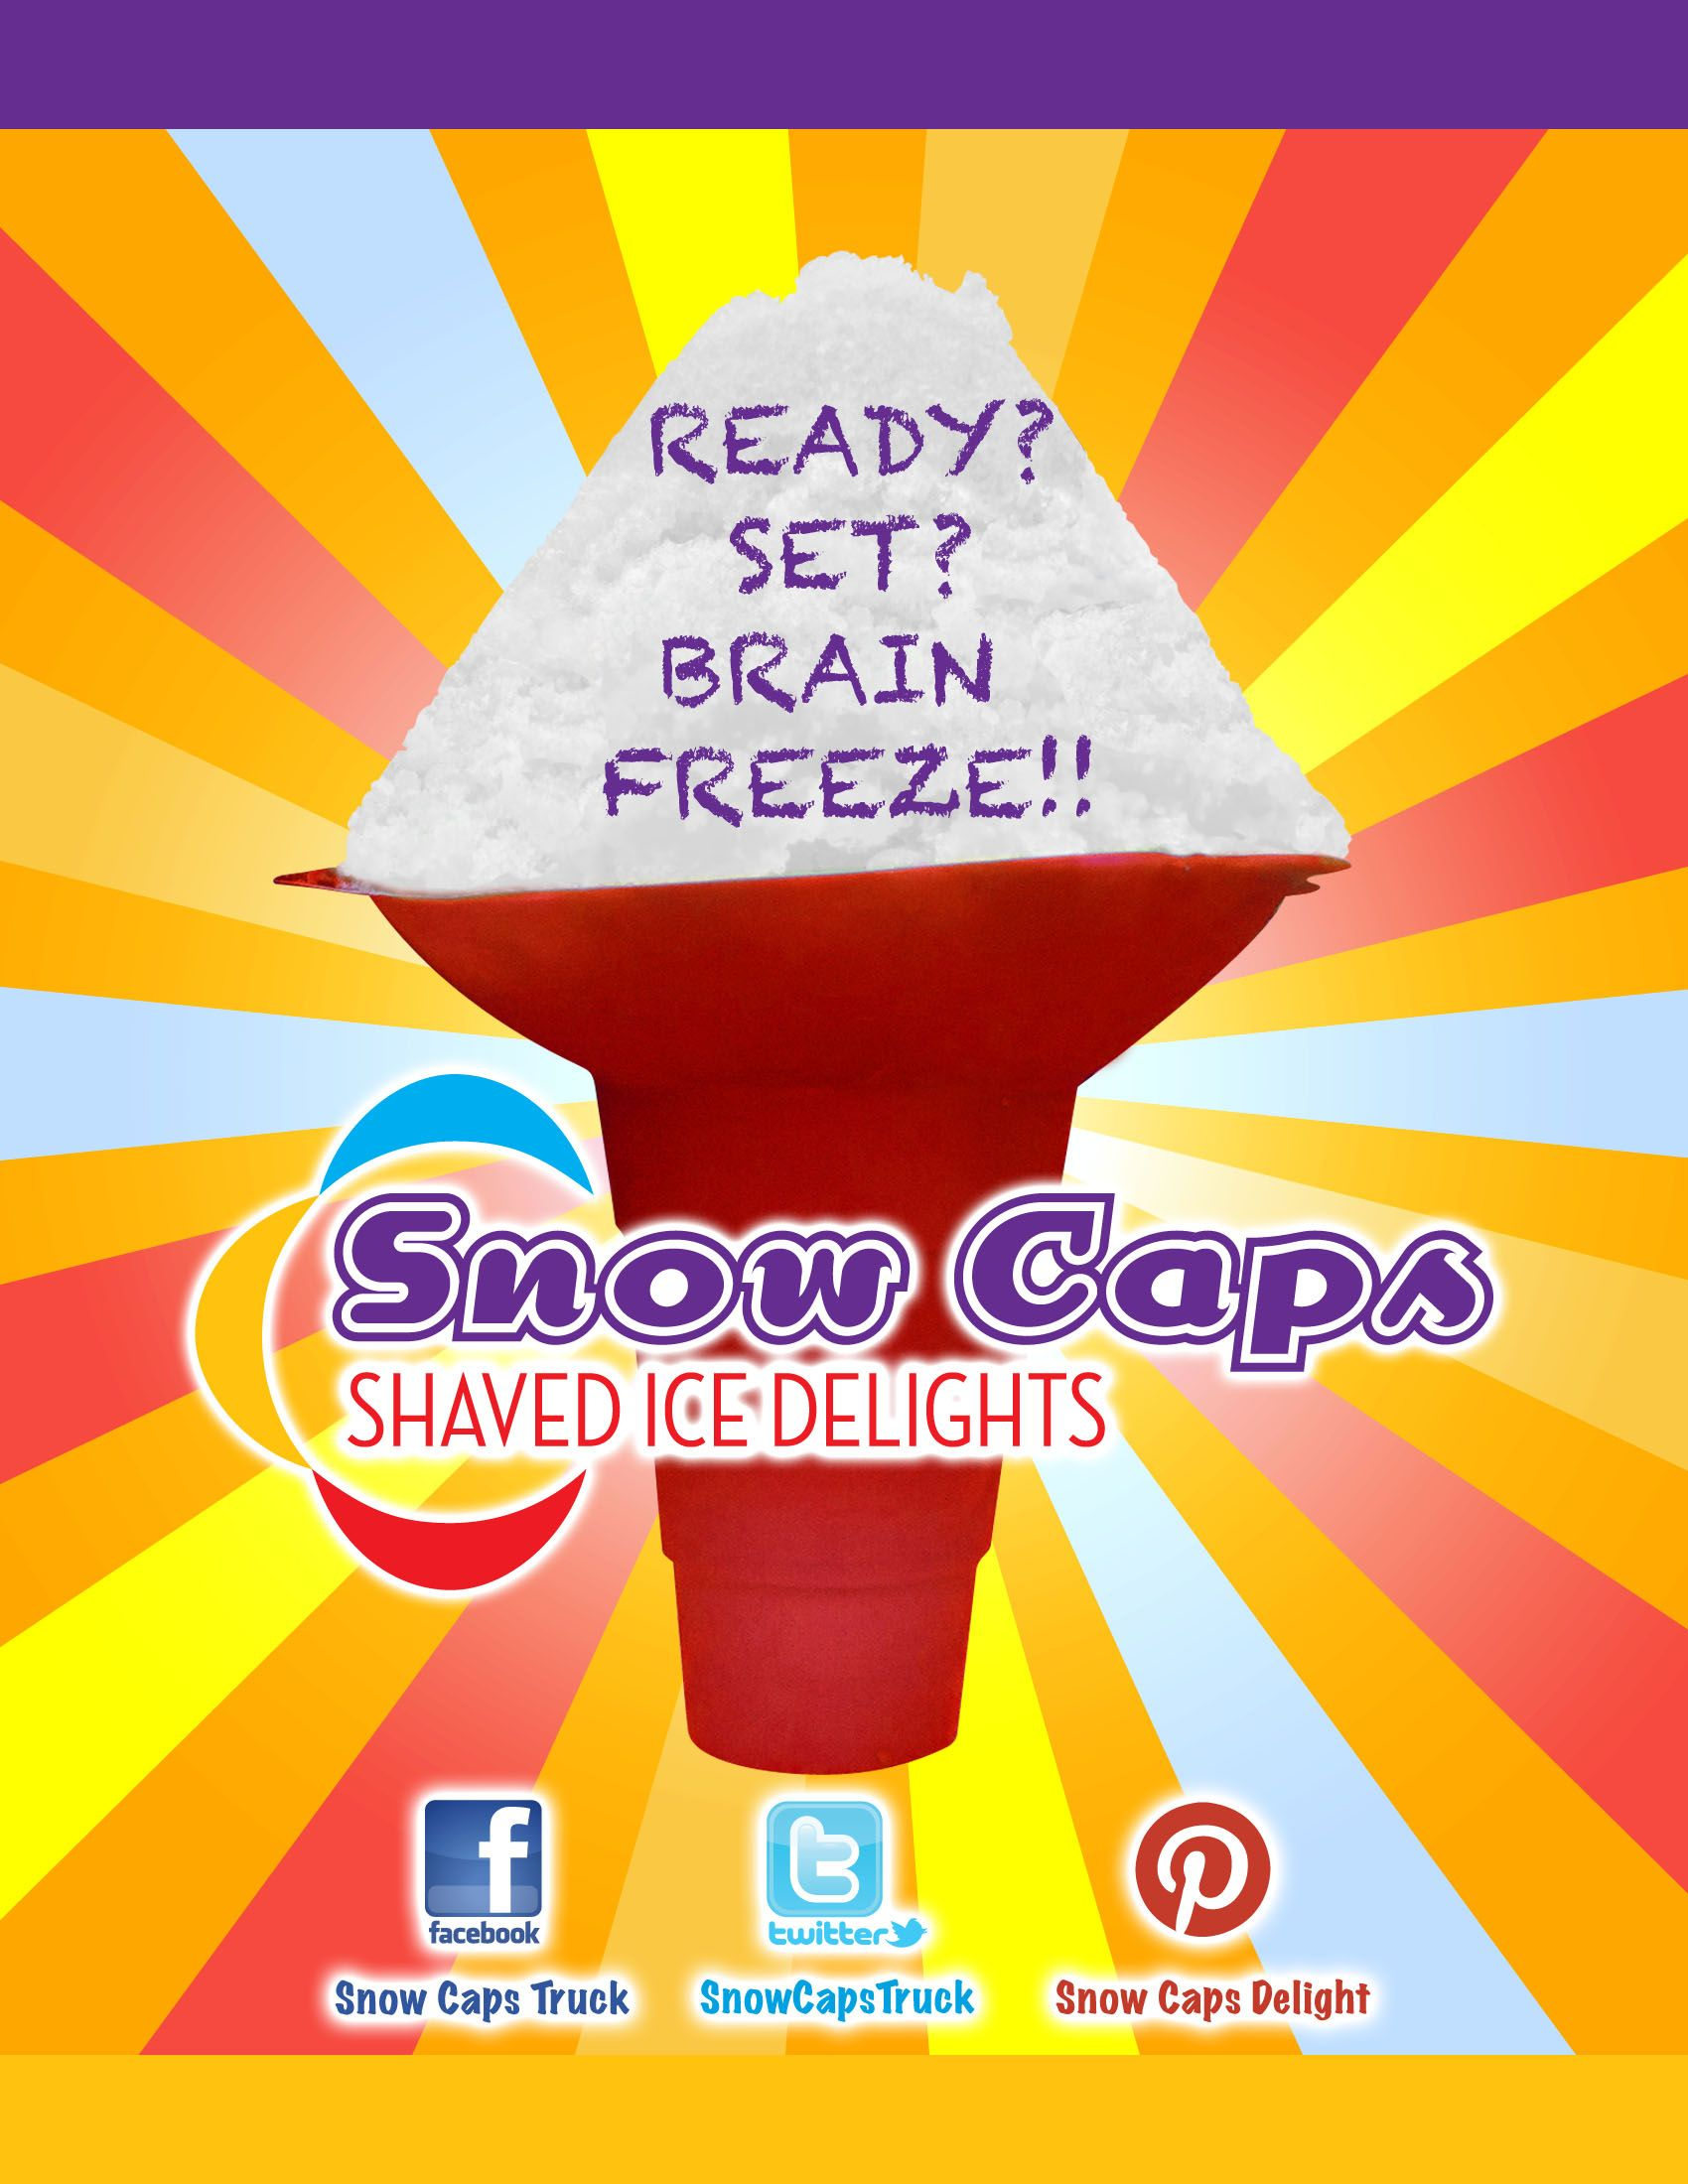 How fast can you say BRAIN FREEZE?